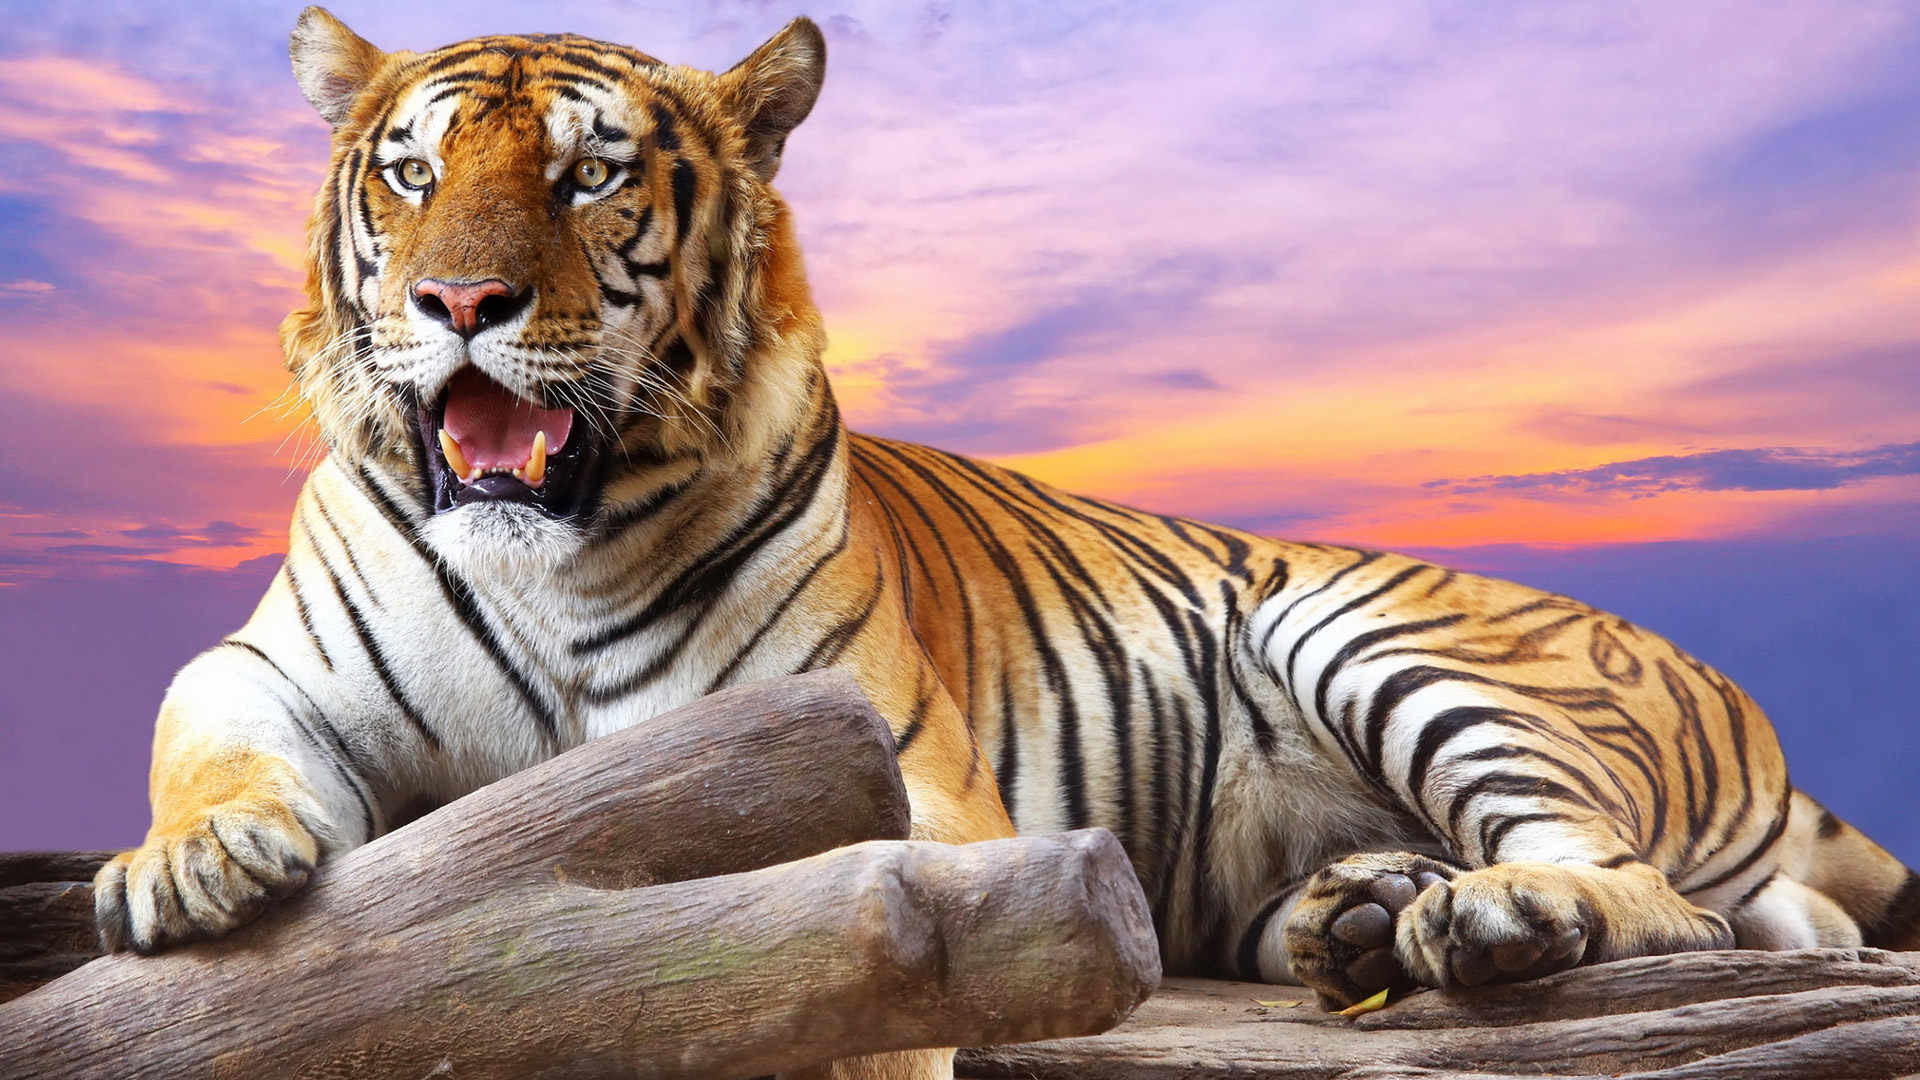 Tiger hd wallpaper wallpapertag - Animal 1920x1080 ...